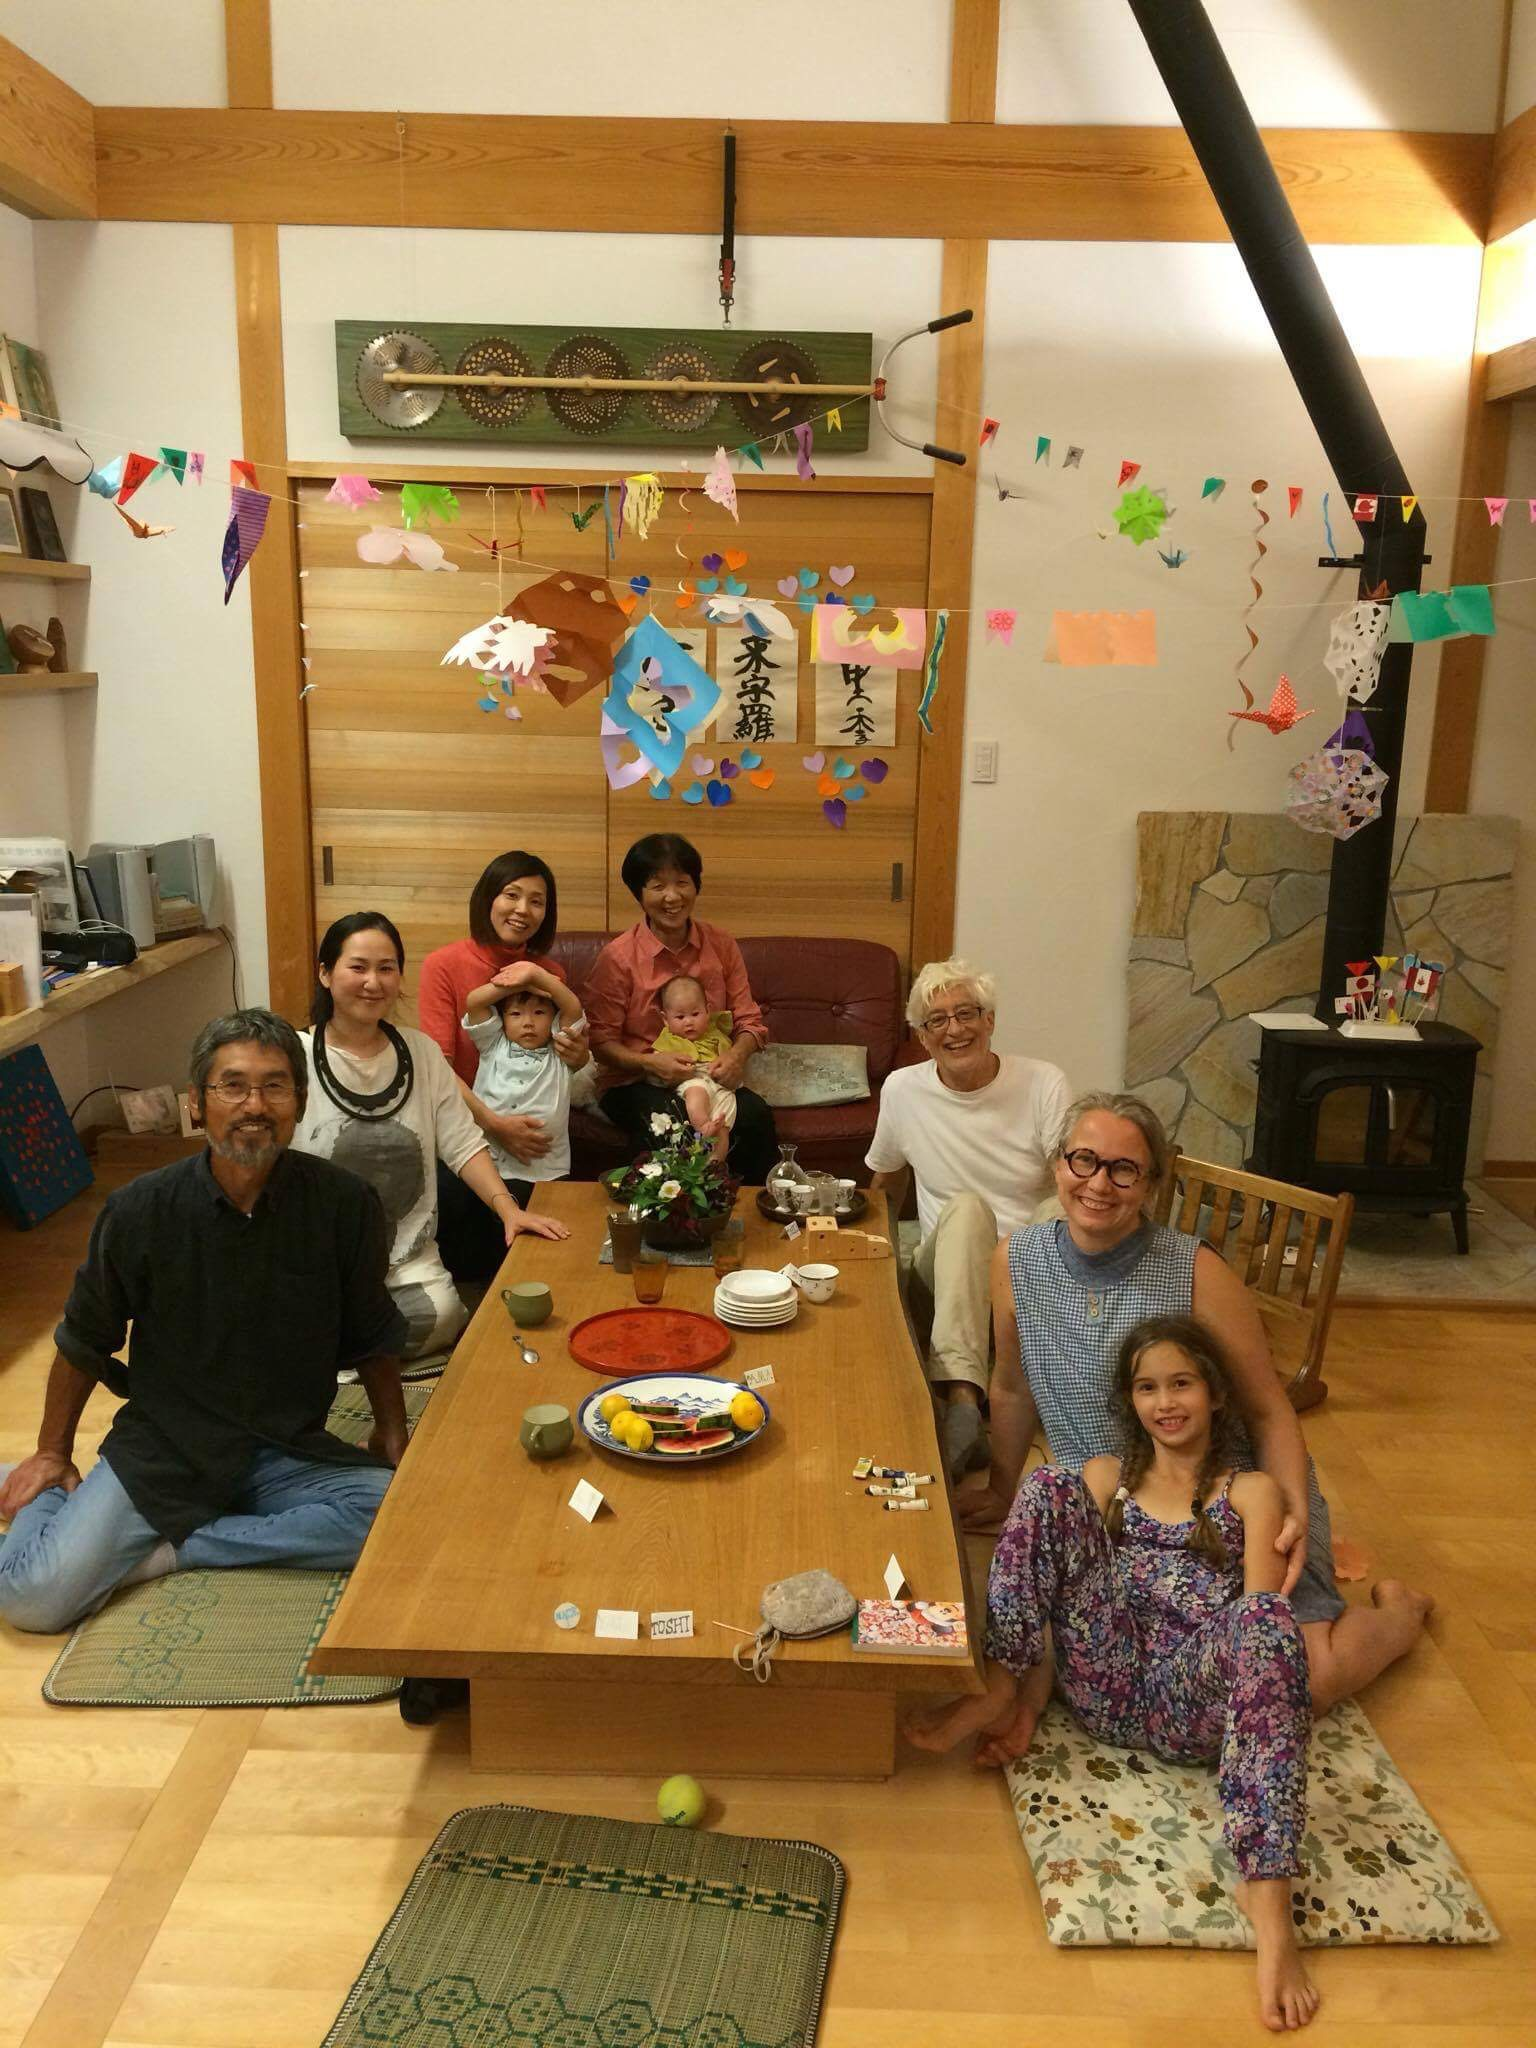 It was just a lovely party. Toshi, Yuka, Yoshiko and Aito and Taeka holding An. Naoki took the picture.   In front of Dante on the table the cool pencil holder Toshi made for us - if you look closely you can see the three parts representing the family.